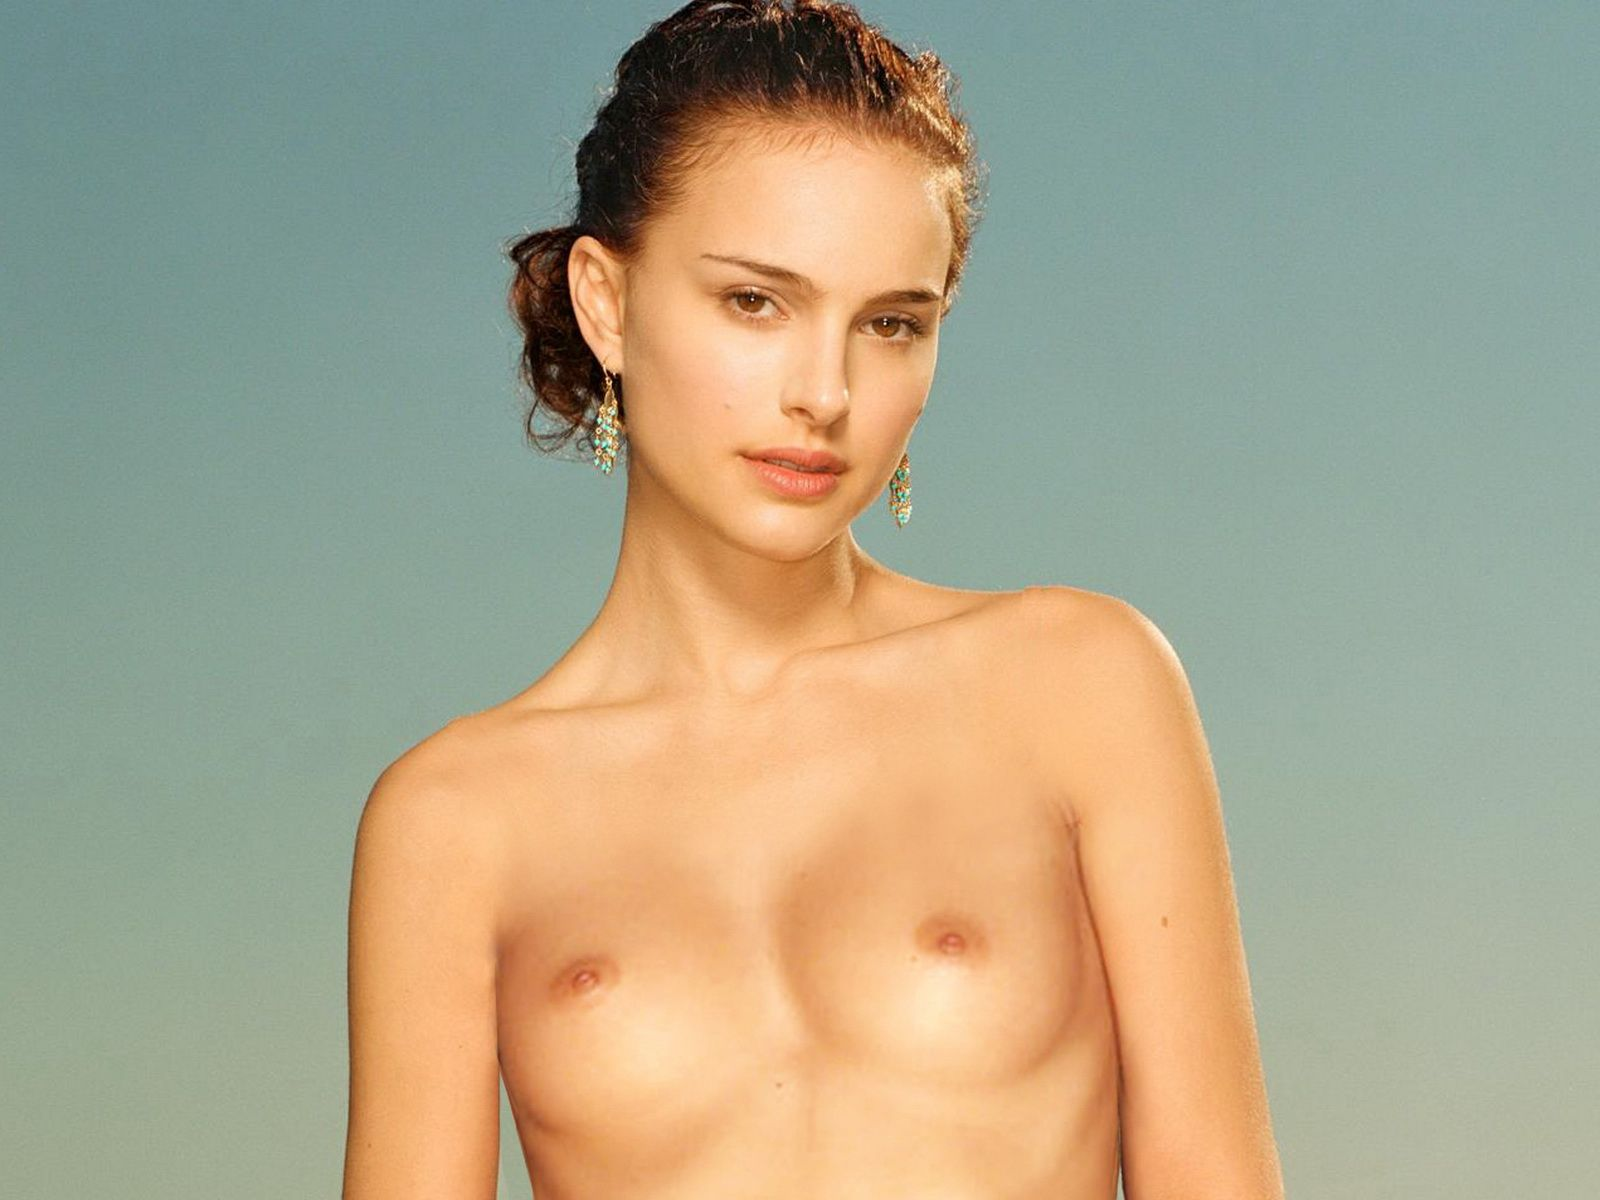 guy-pics-sexy-nude-pictures-of-natalie-portman